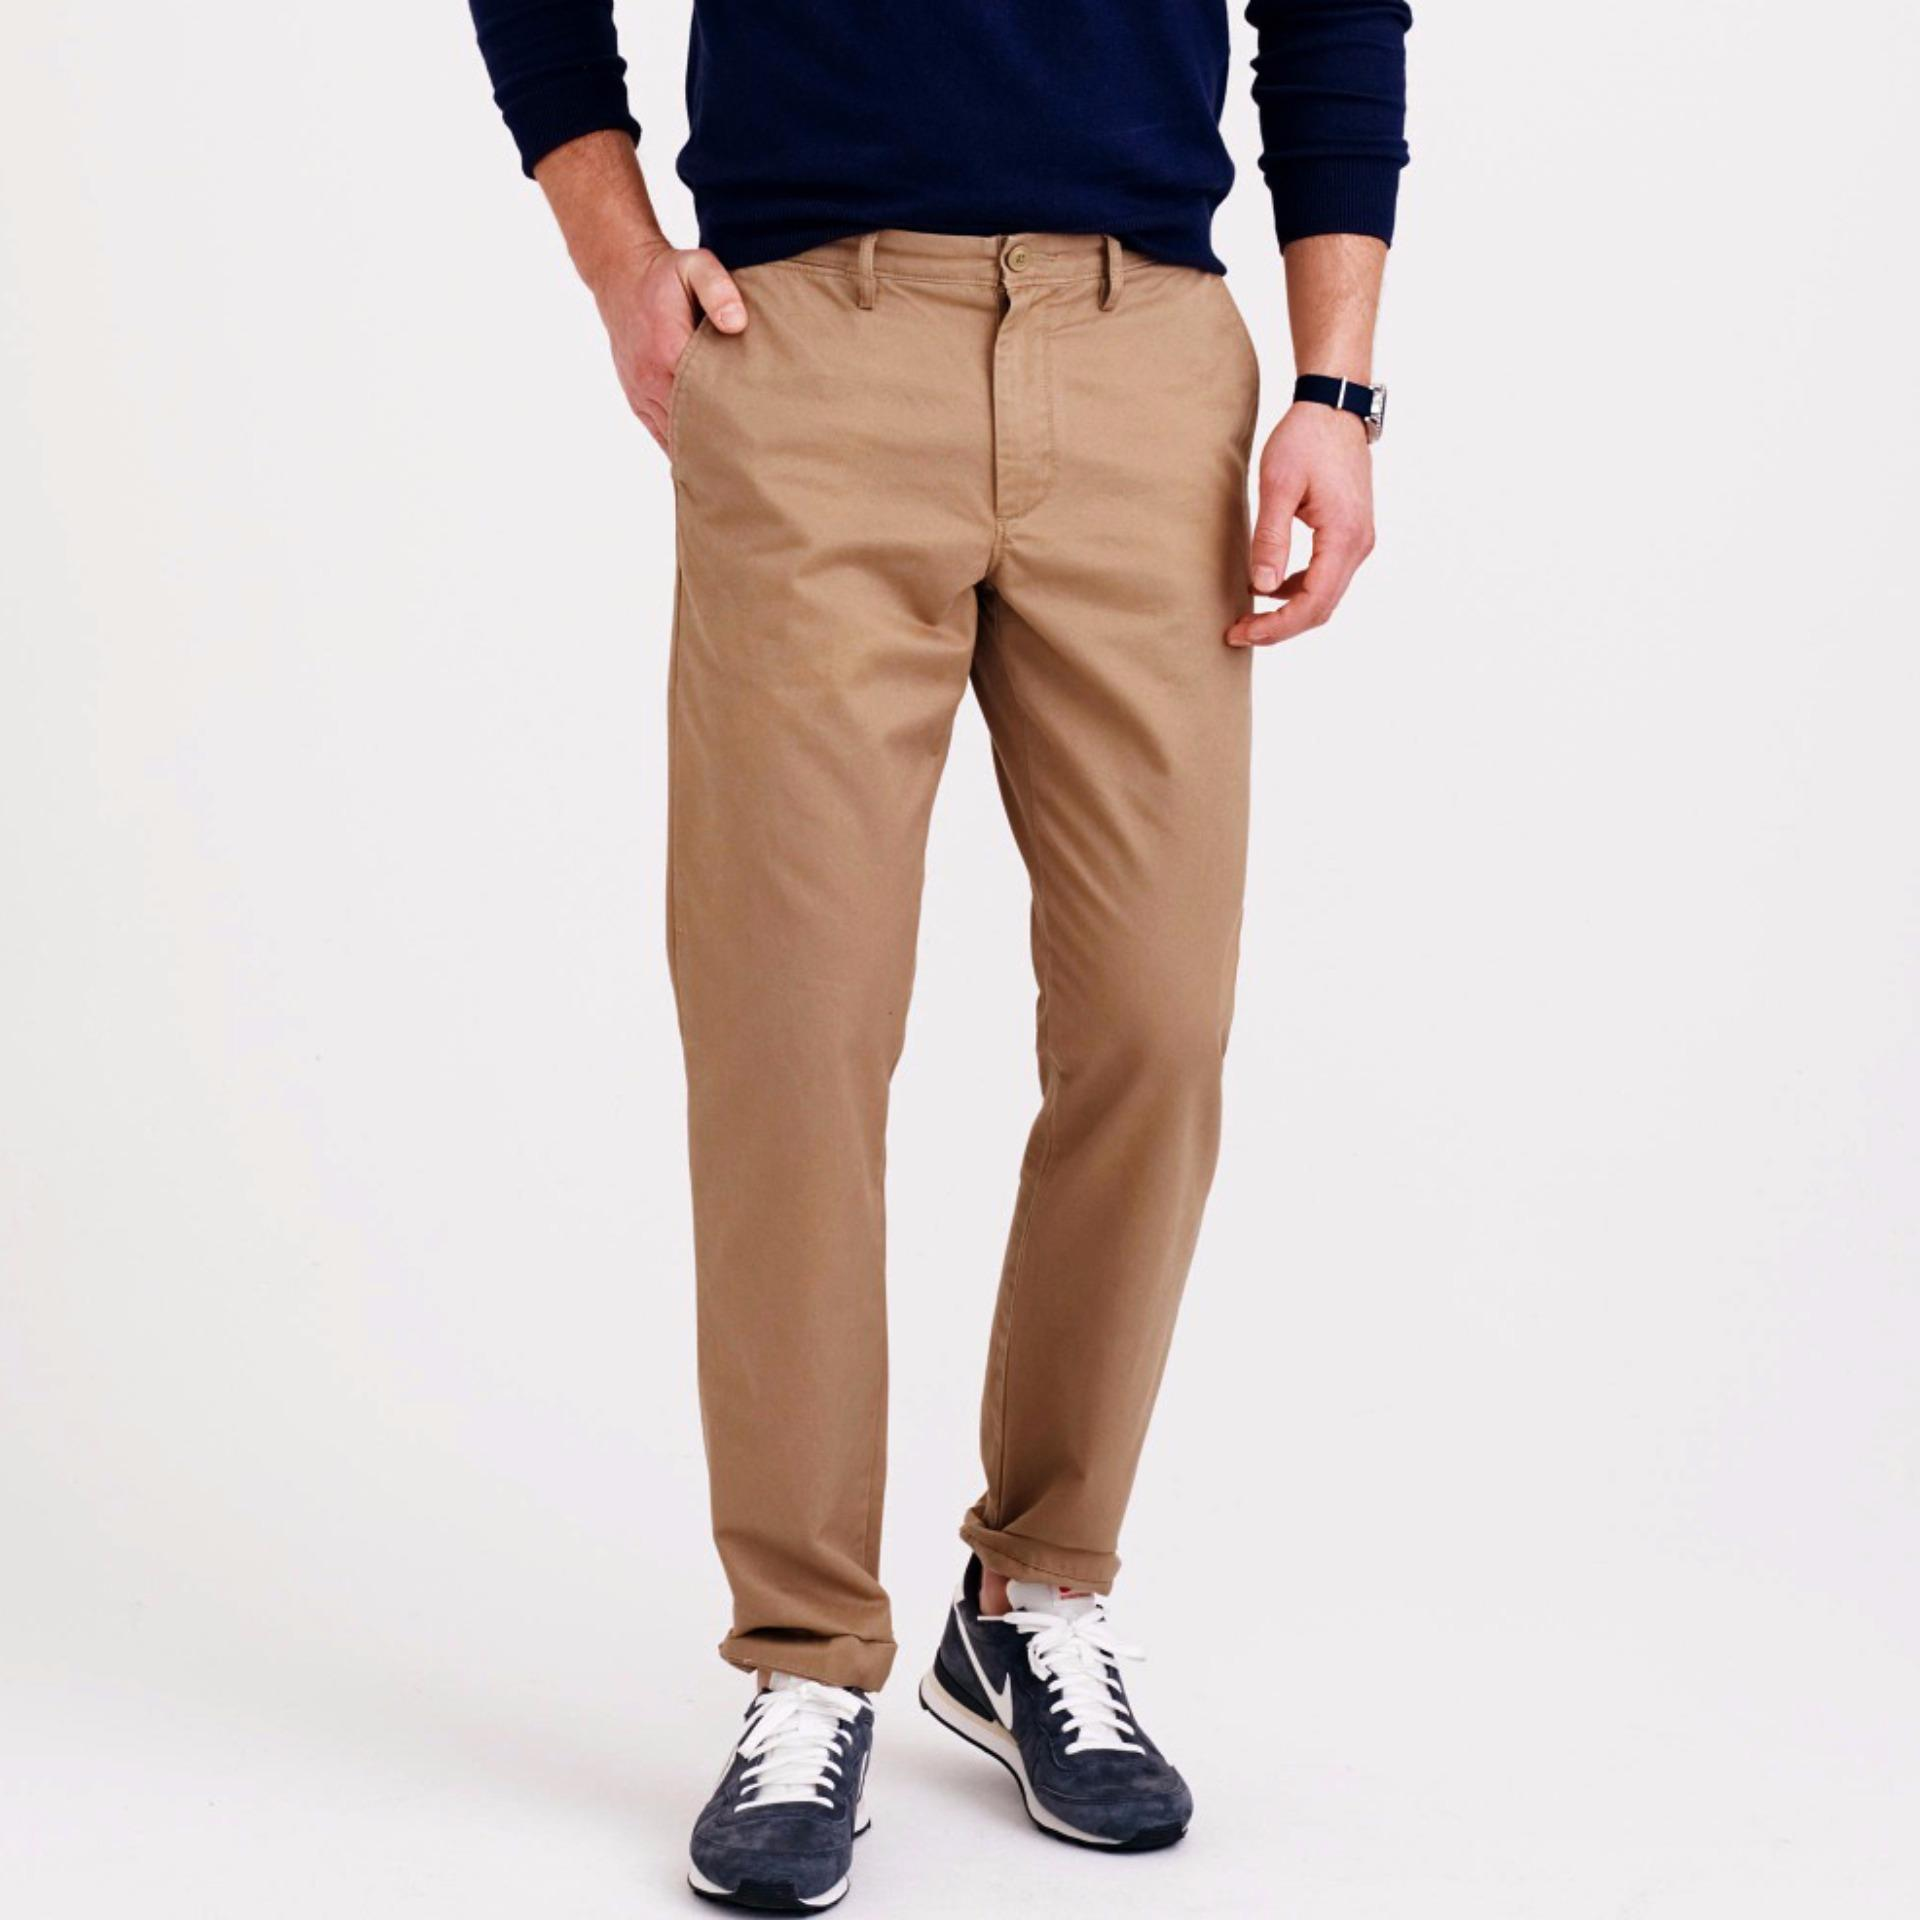 Ard Celana Chino Panjang Premium Coffee Update Daftar Harga Aglint Abu Grey Source Big Size 35 42 Navy